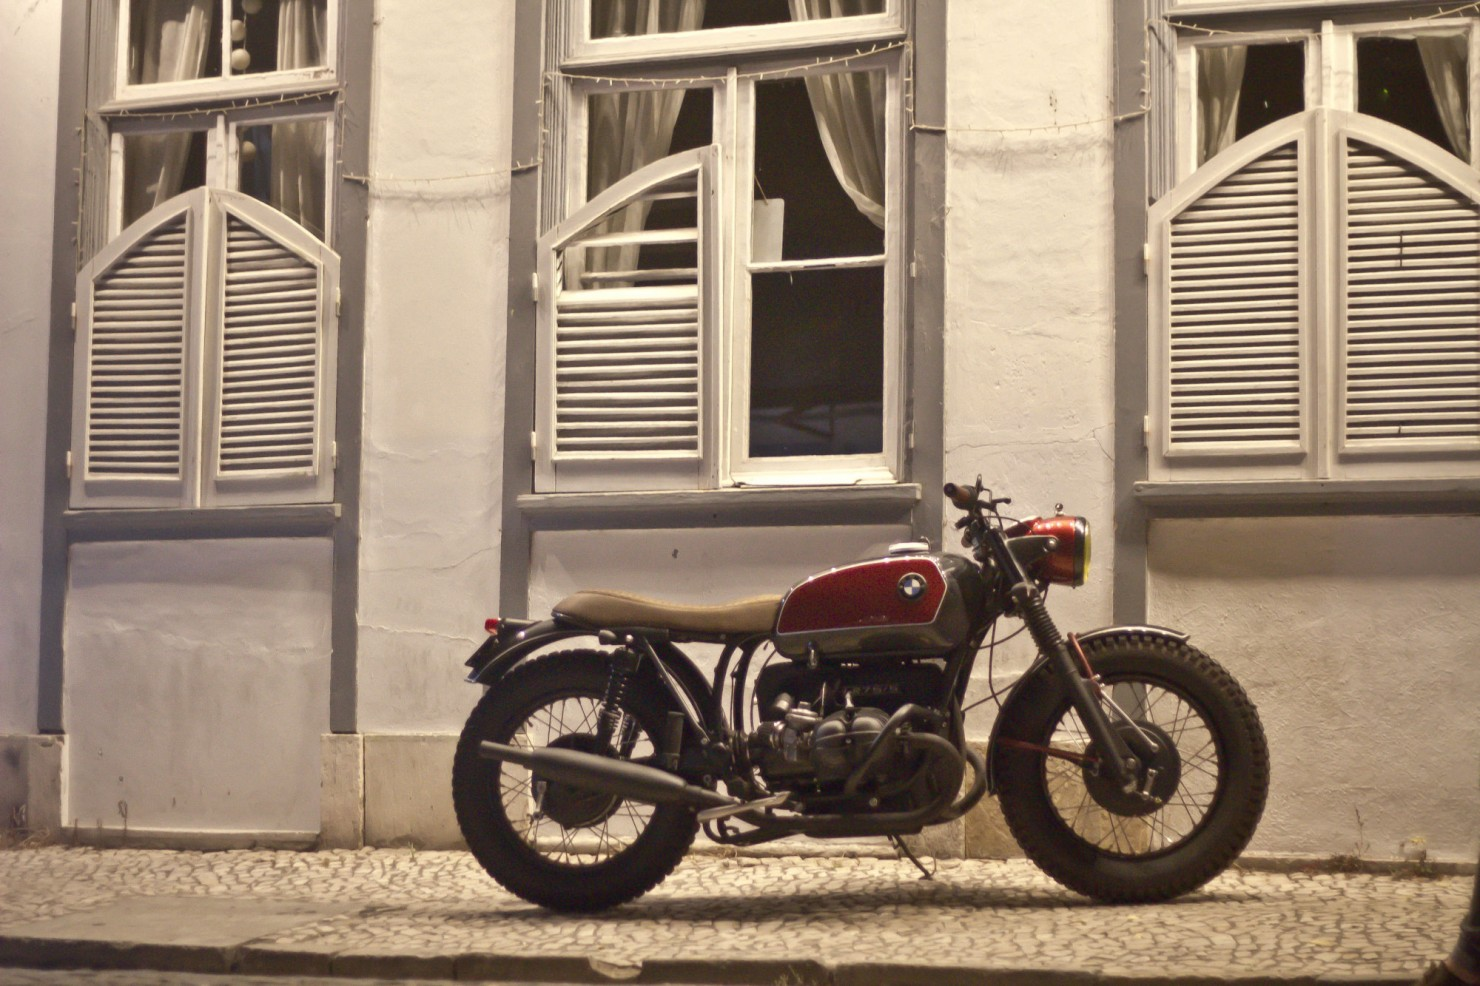 BMW-R755-Motorcycle-11